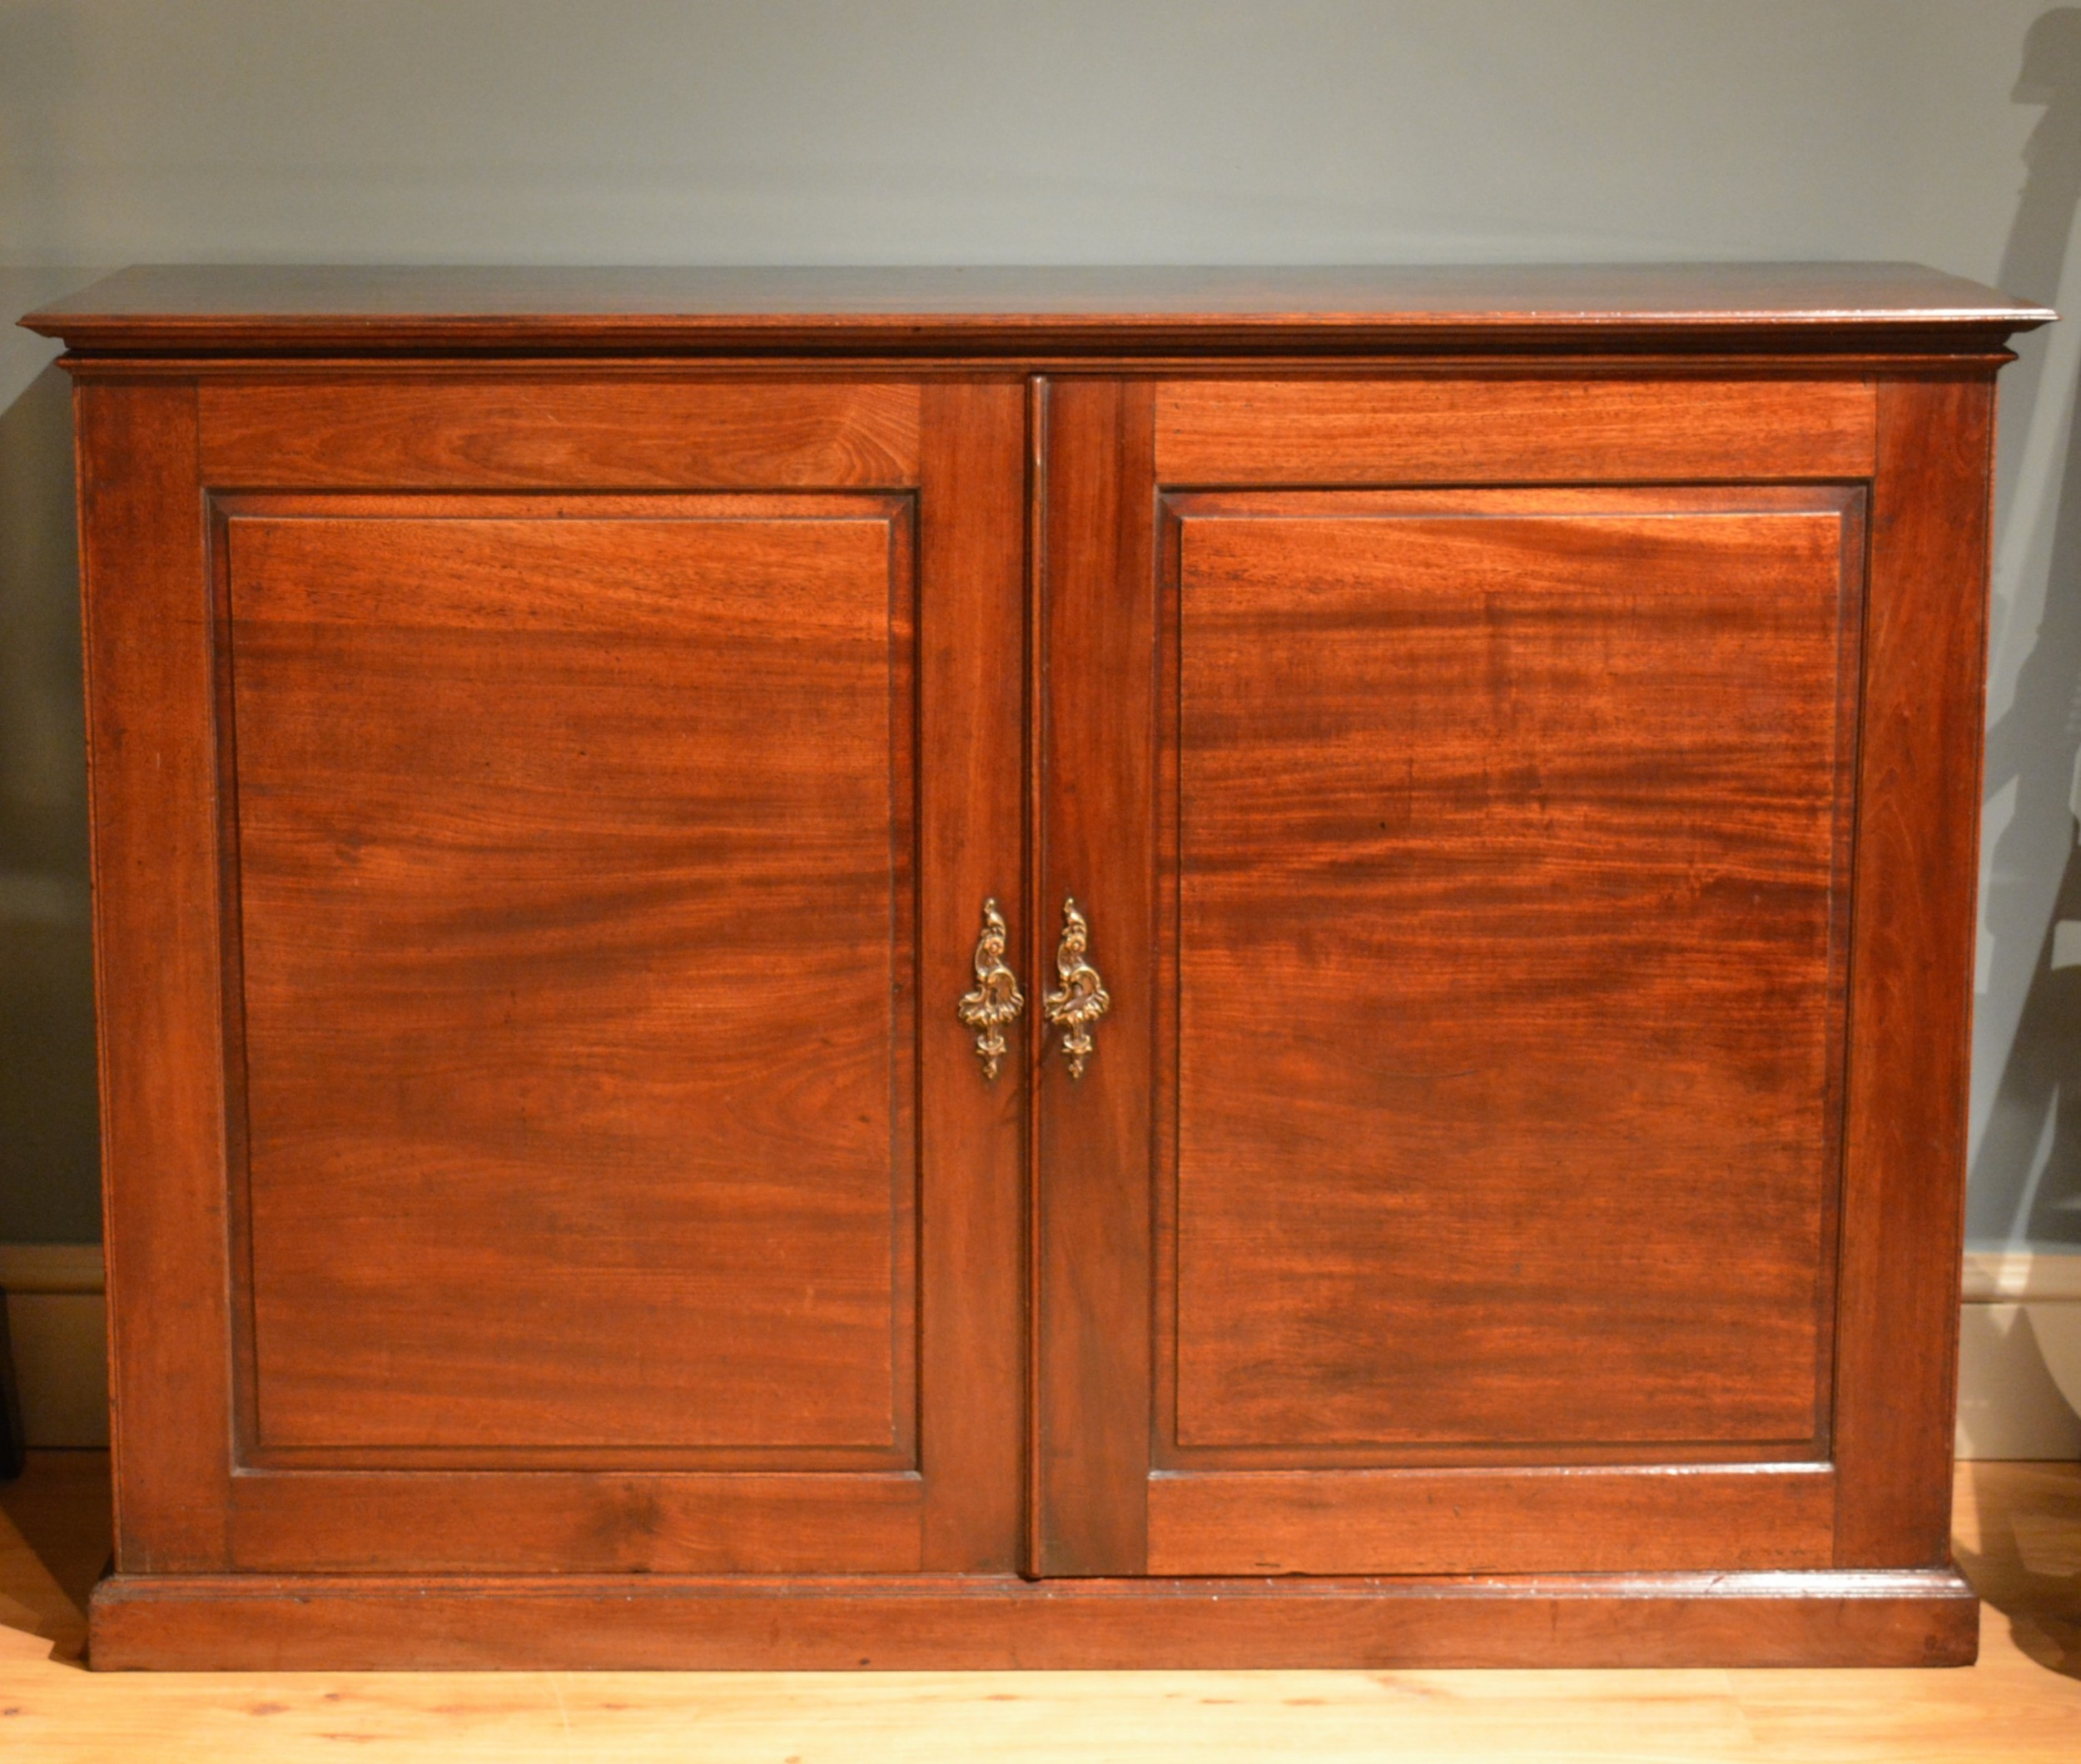 18th century mahogany low two door side cabinet